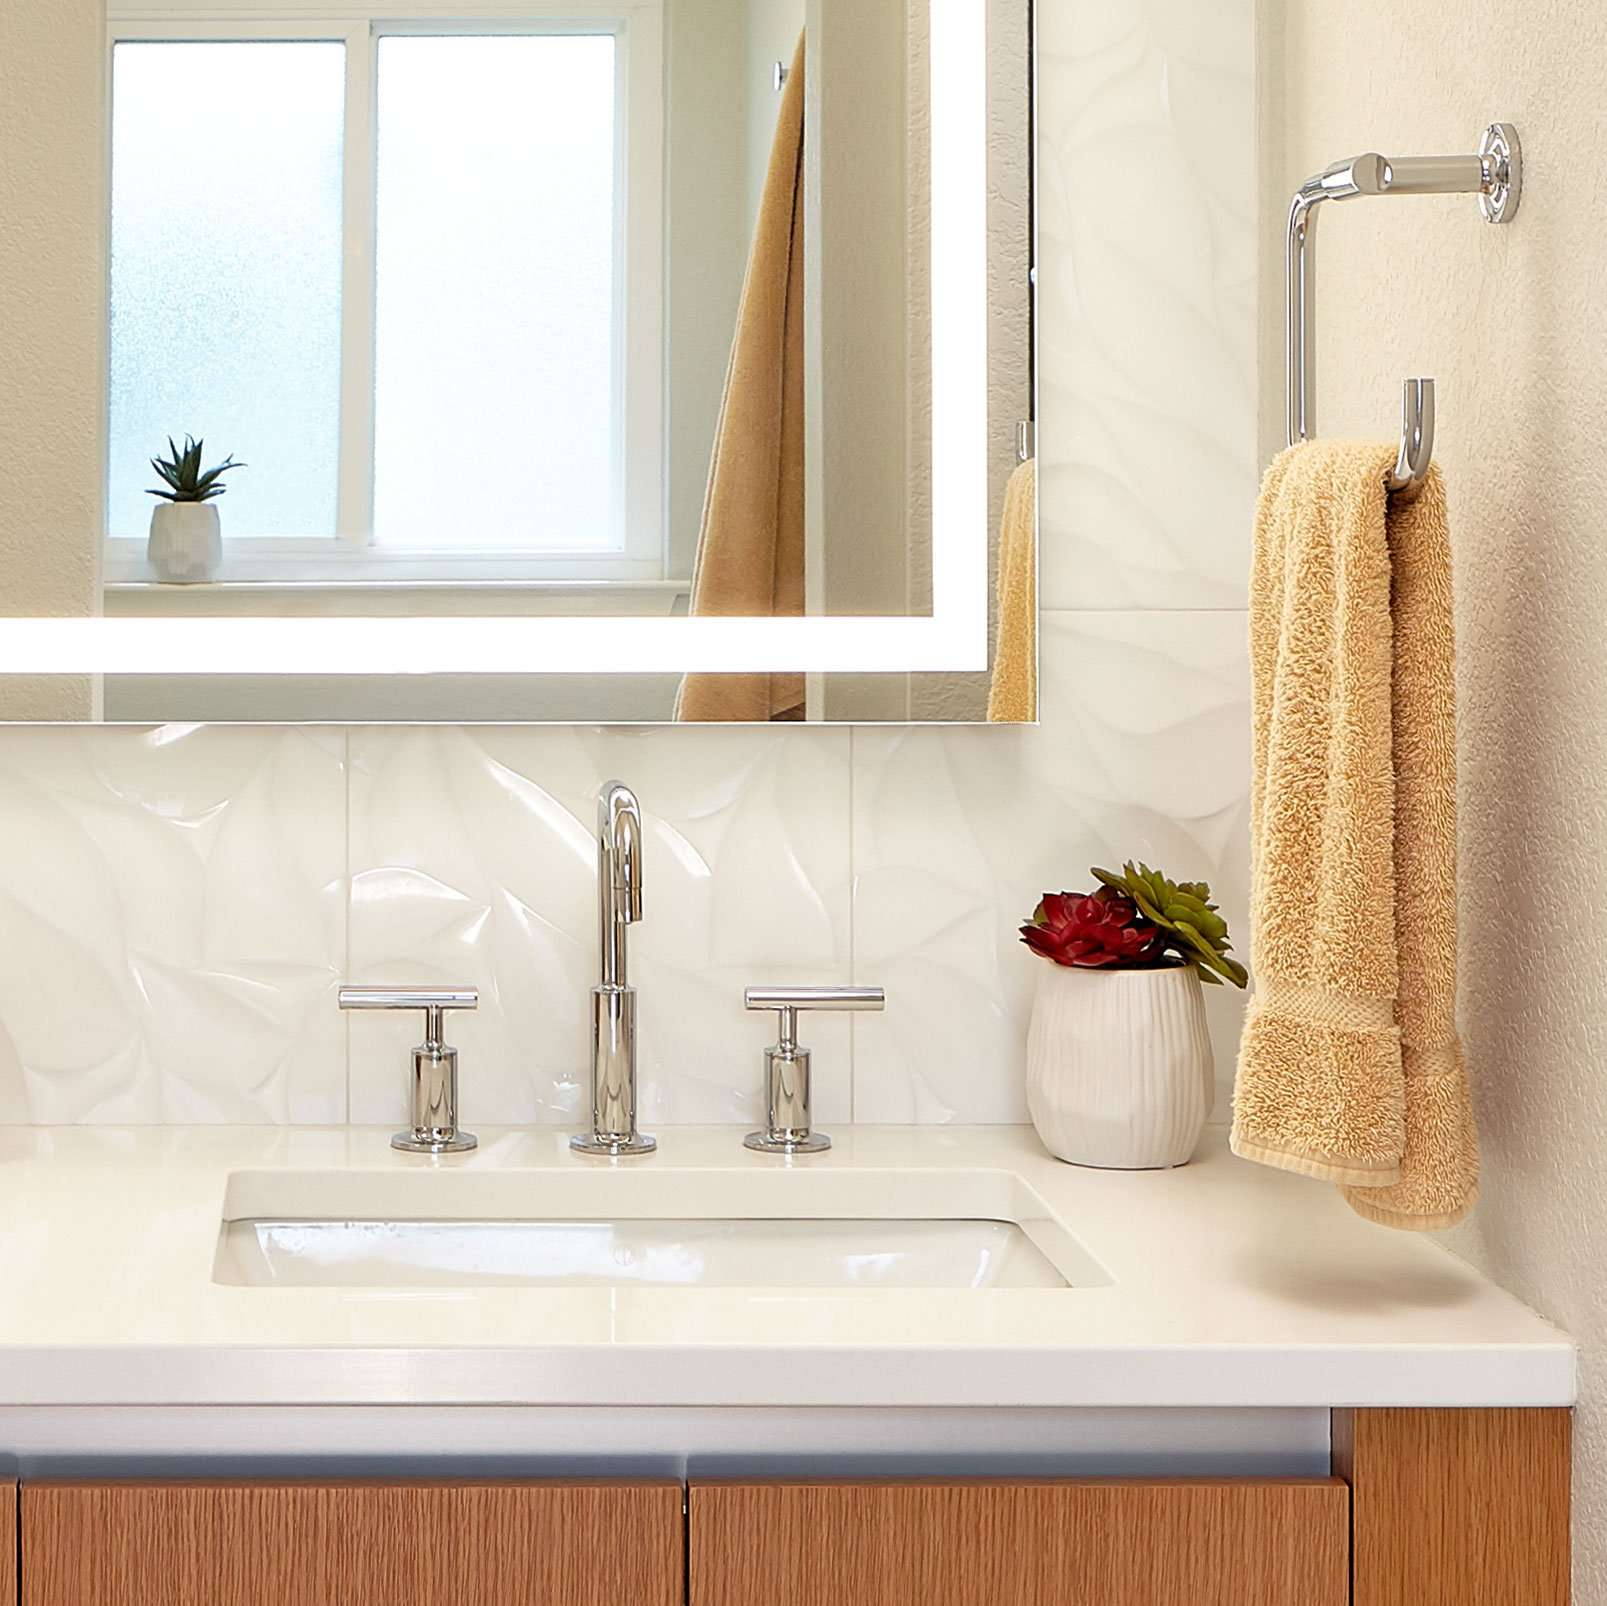 Bright sink with yellow towel hanging